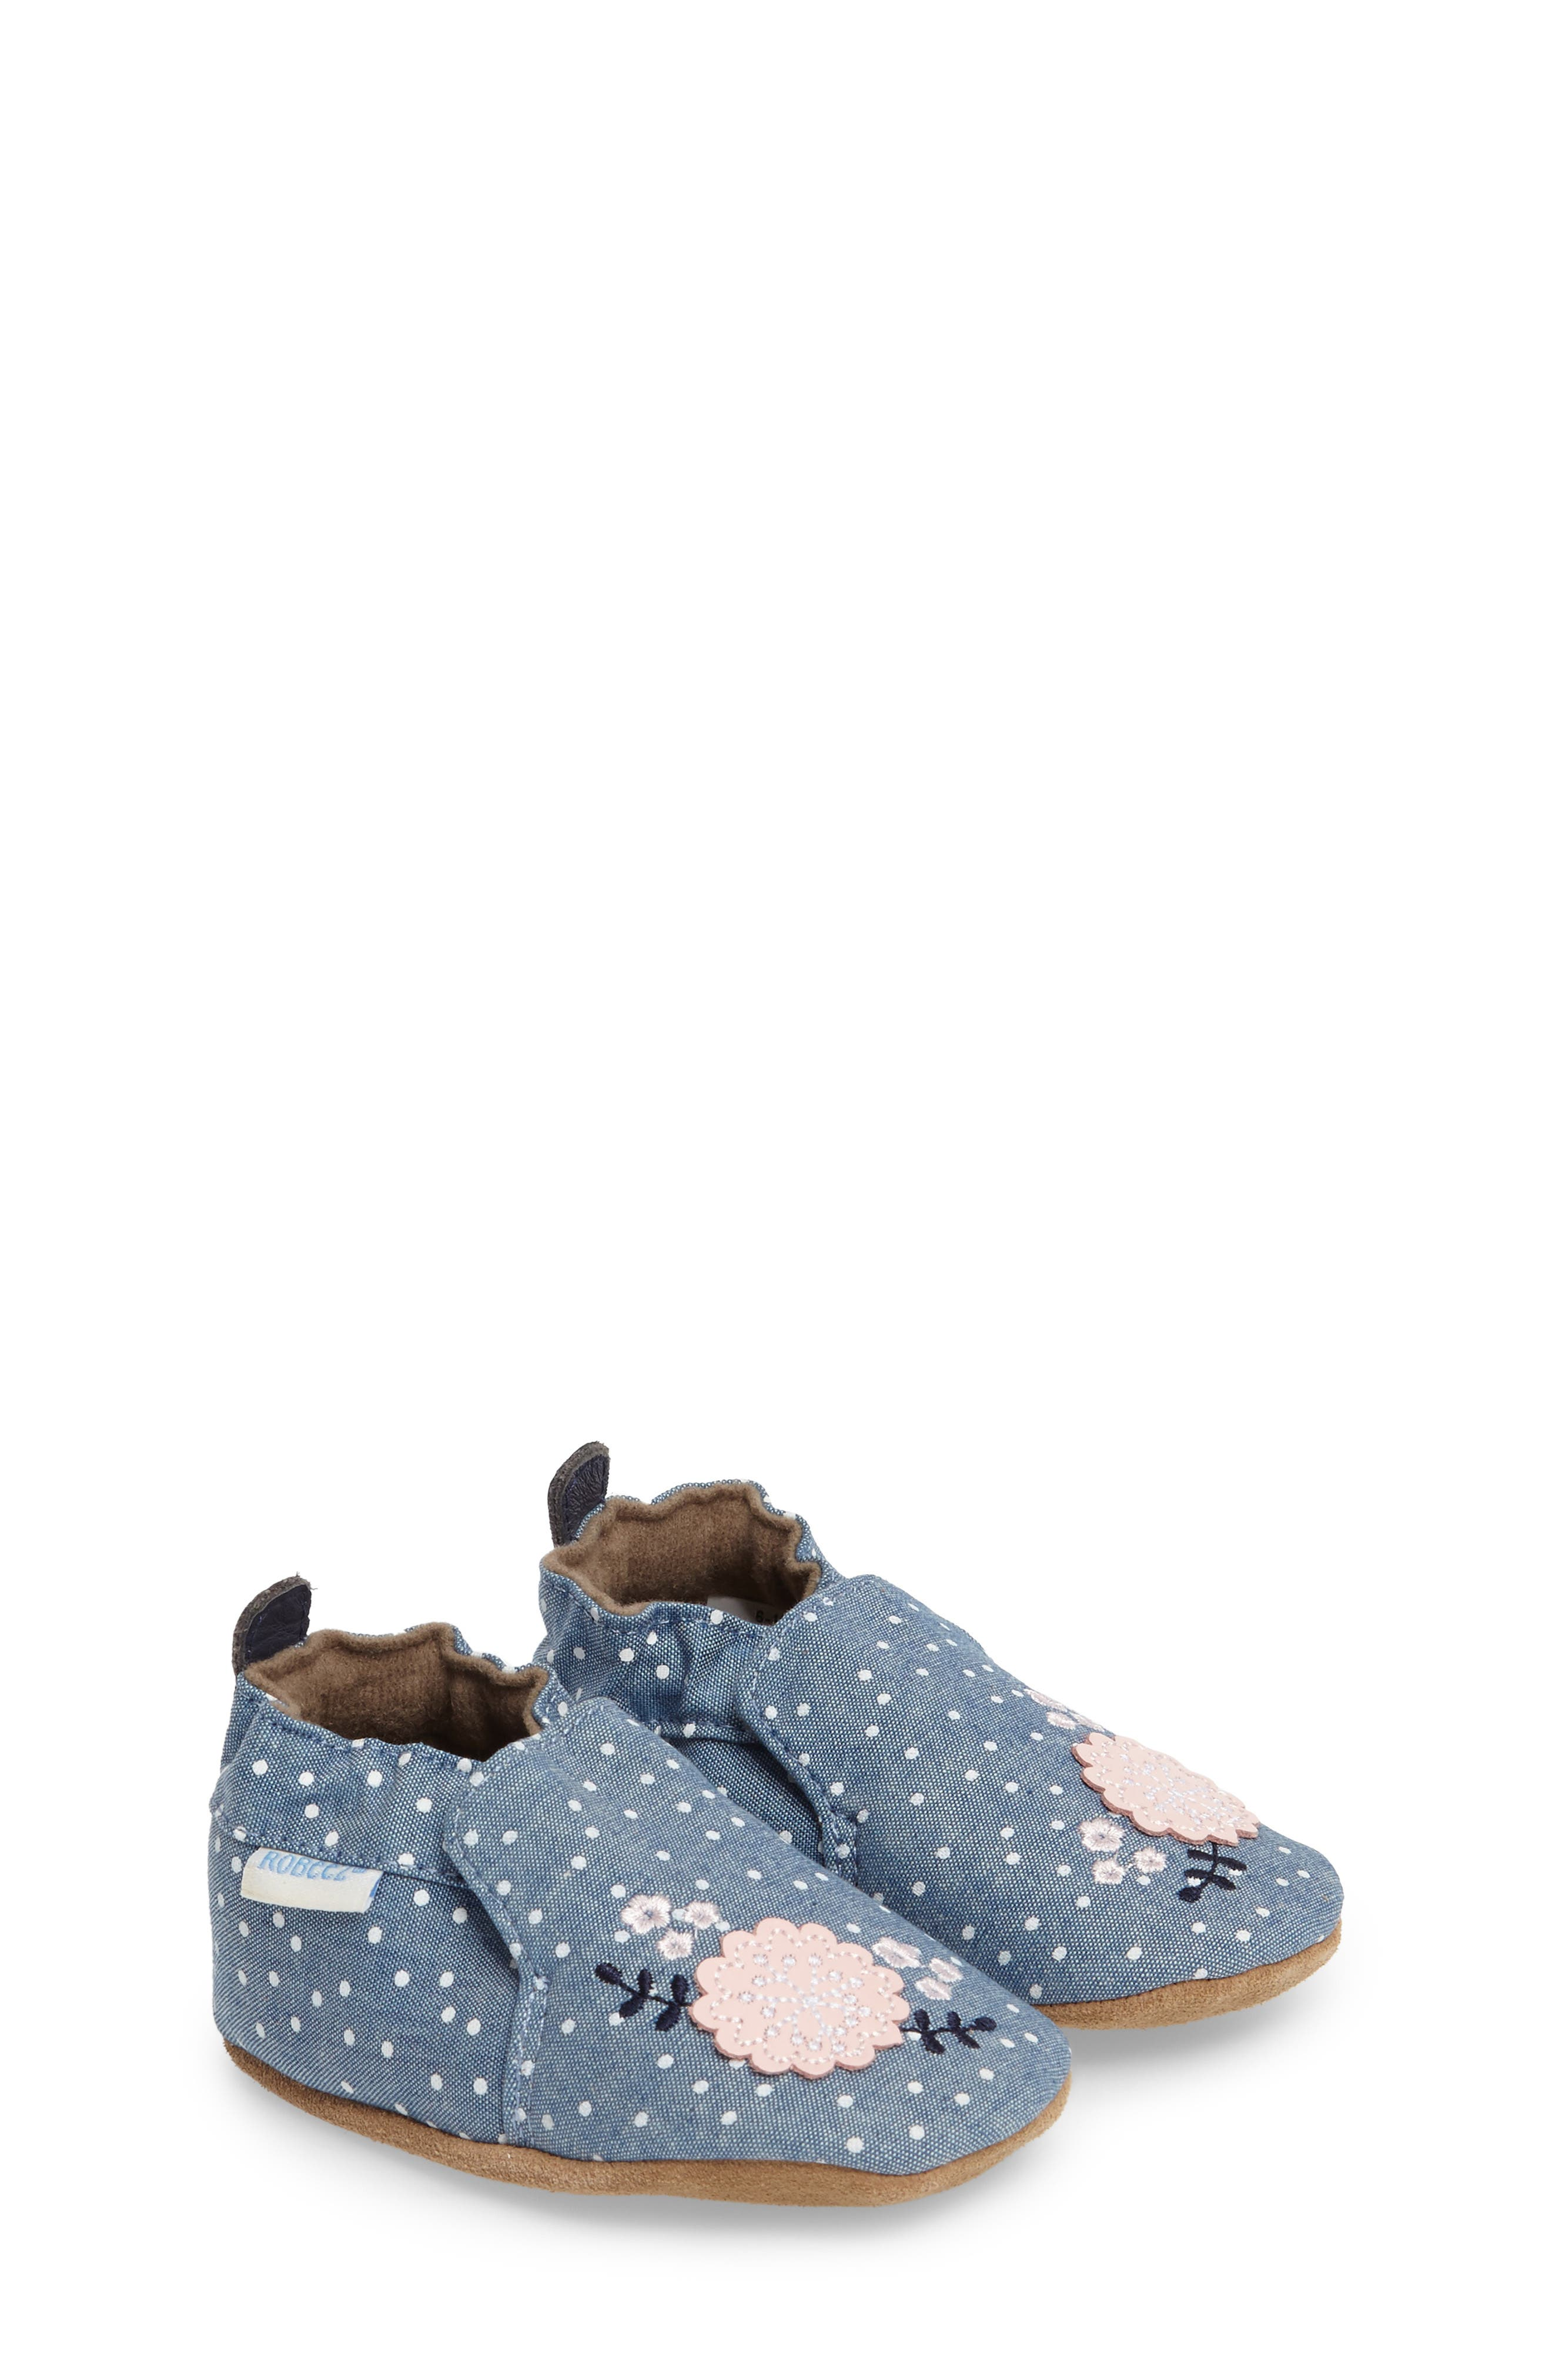 Main Image - Robeez® Chambray Bouquet Slip-On Crib Shoe (Baby & Walker)